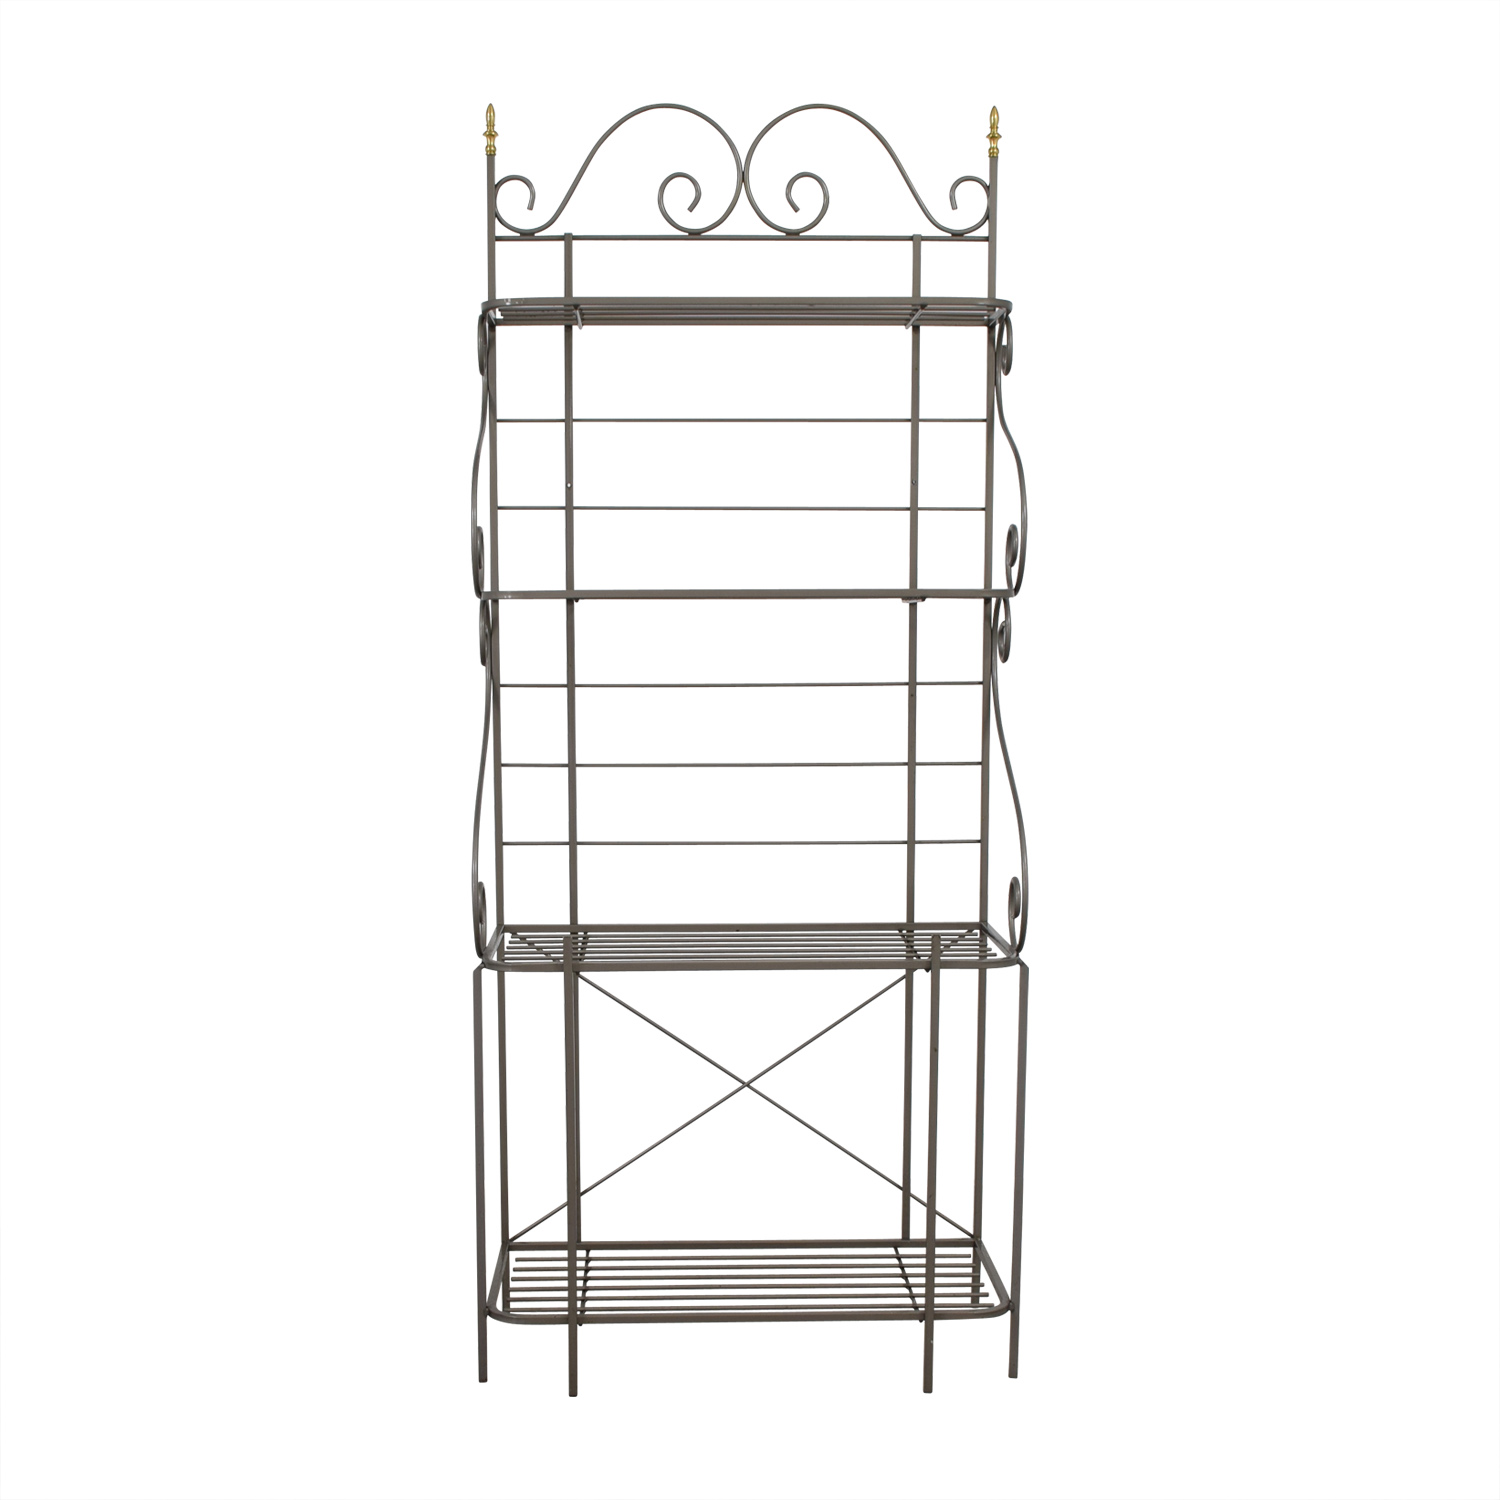 Foremost Furniture Foremost Furniture Grey Metal Bakers Rack For Sale